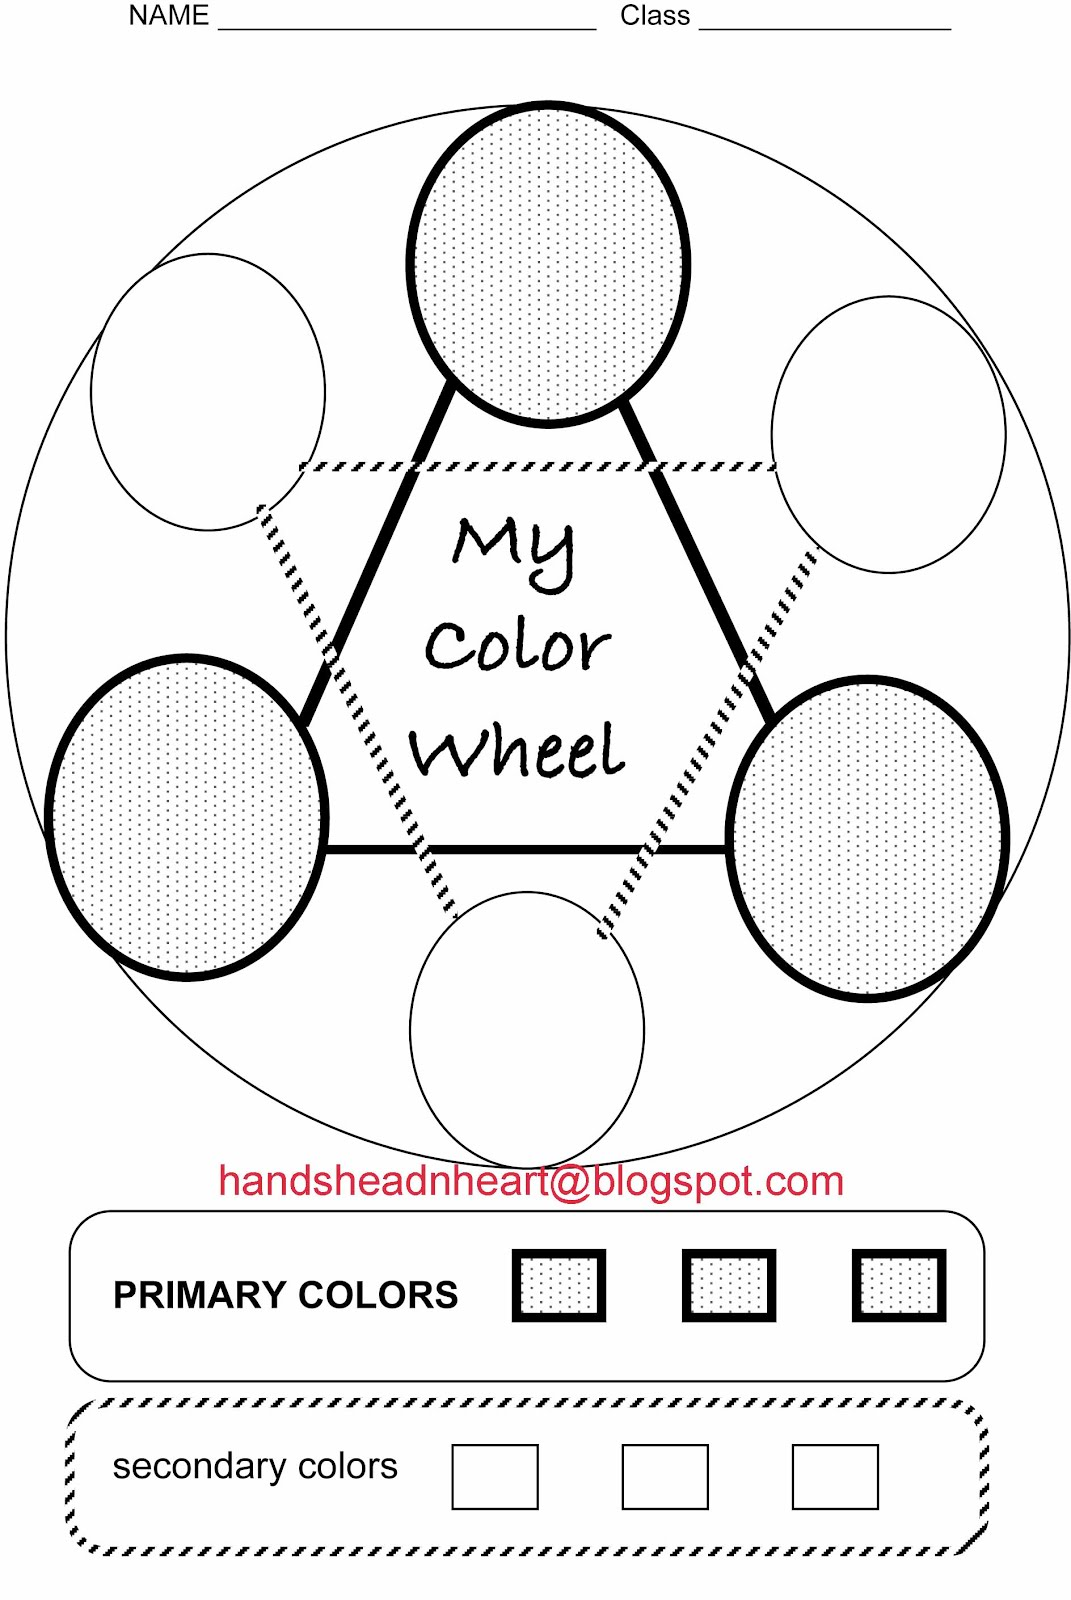 Hands Head N Heart In The Artroom Color Wheels With